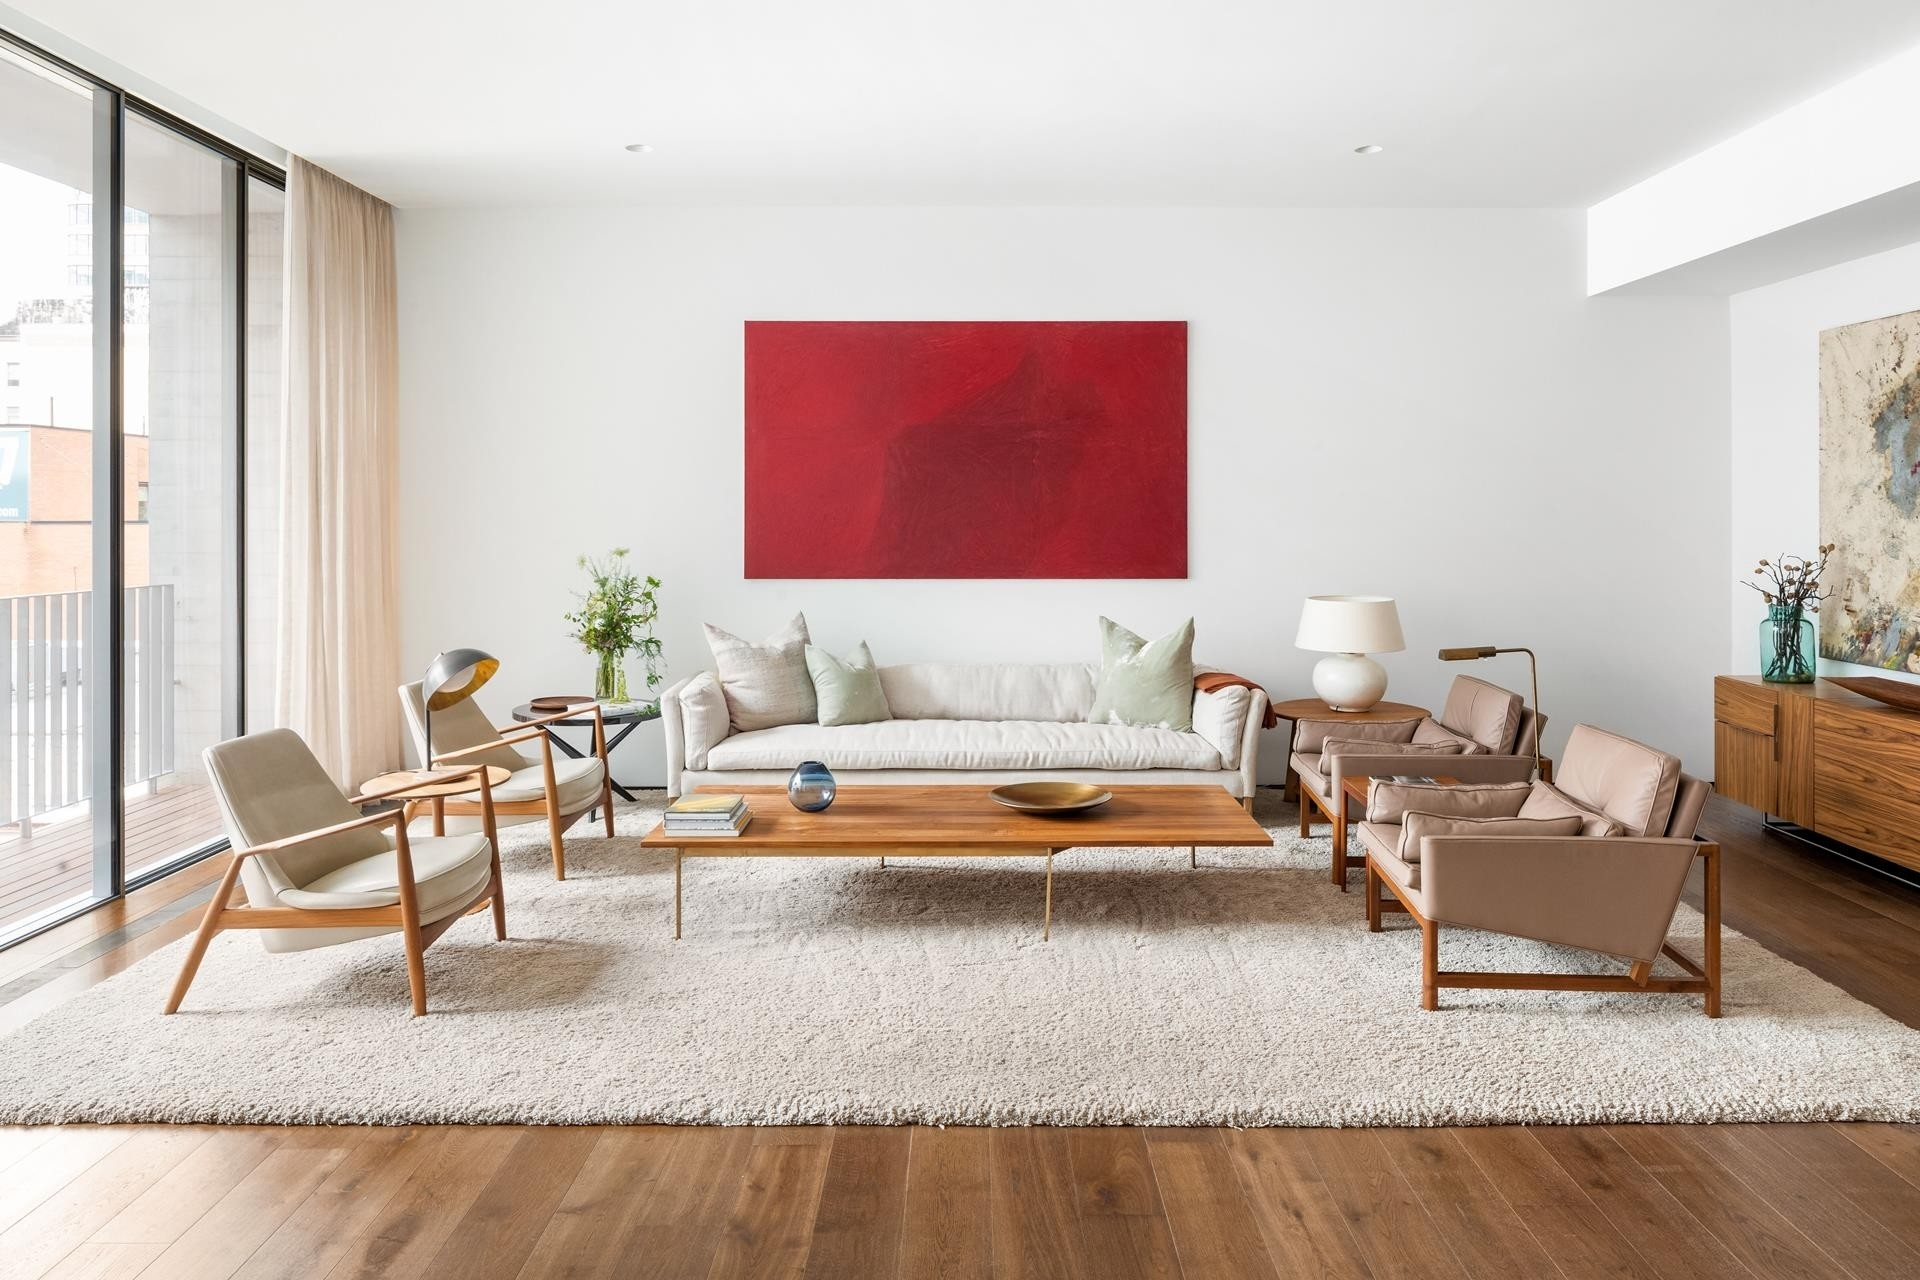 Condominium for Sale at Jardim, 527 West 27th St, 4A Chelsea, New York, NY 10001